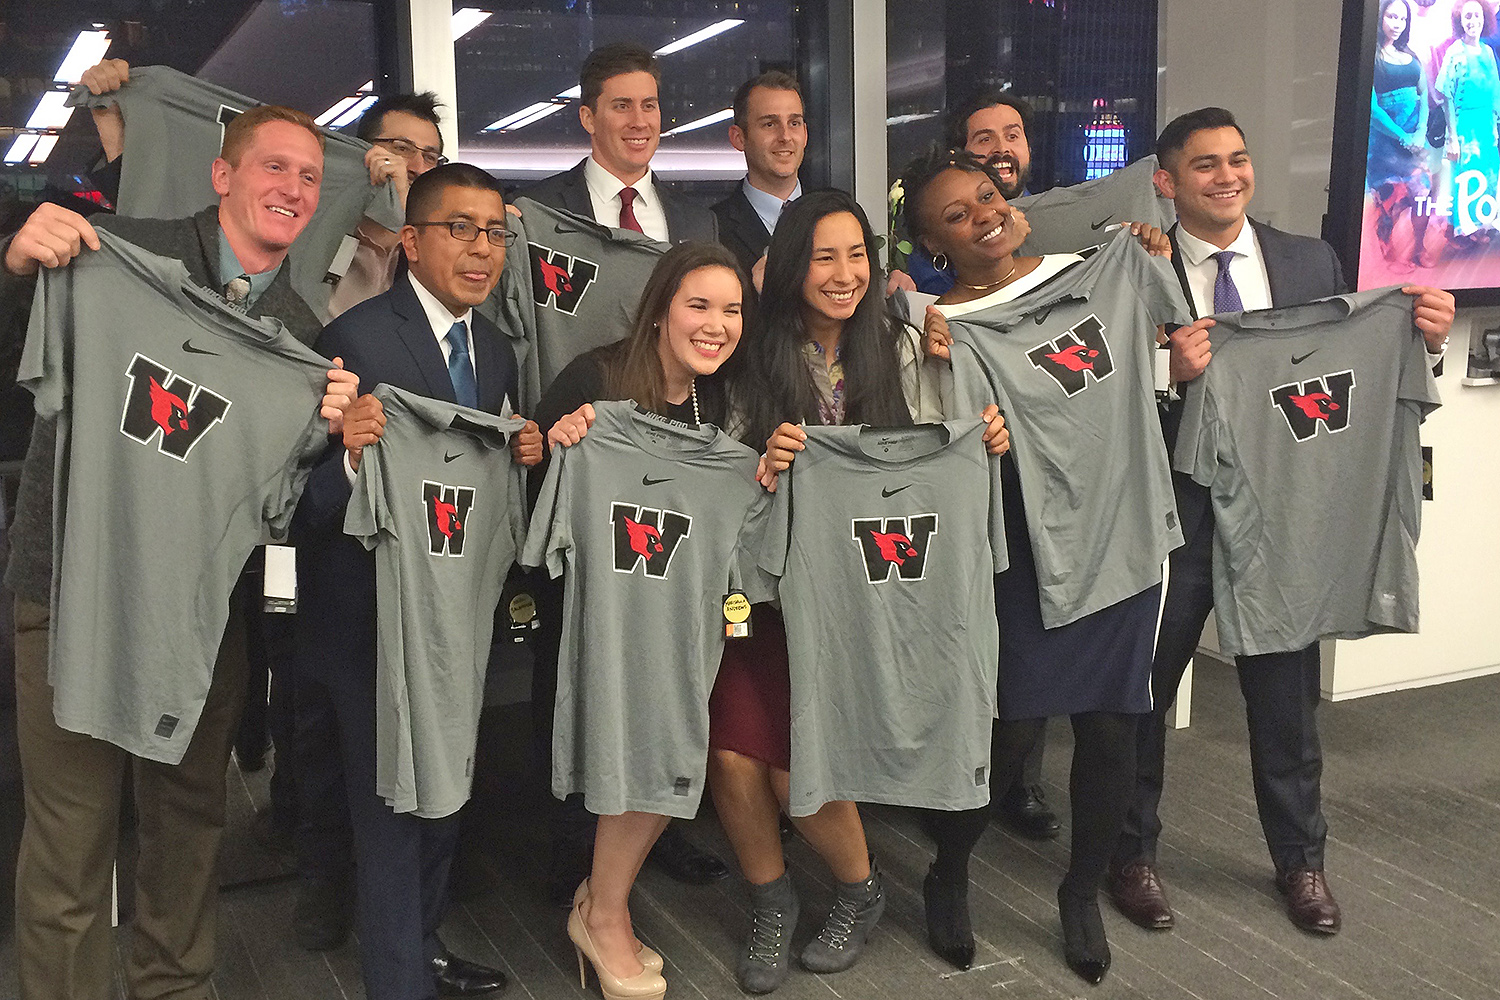 Wesleyan's newest group of Posse Veteran Scholars. Back row, from left: Gregory Hardy, Andrew Daggon, Zachary Patterson, Daniel Rodriguez. Front row, from left: Lance Williams, Noel Salvador, Marisella Andrews, Rebecca Martinez, Gabrielle Hurlock, Mitchell Motlagh.